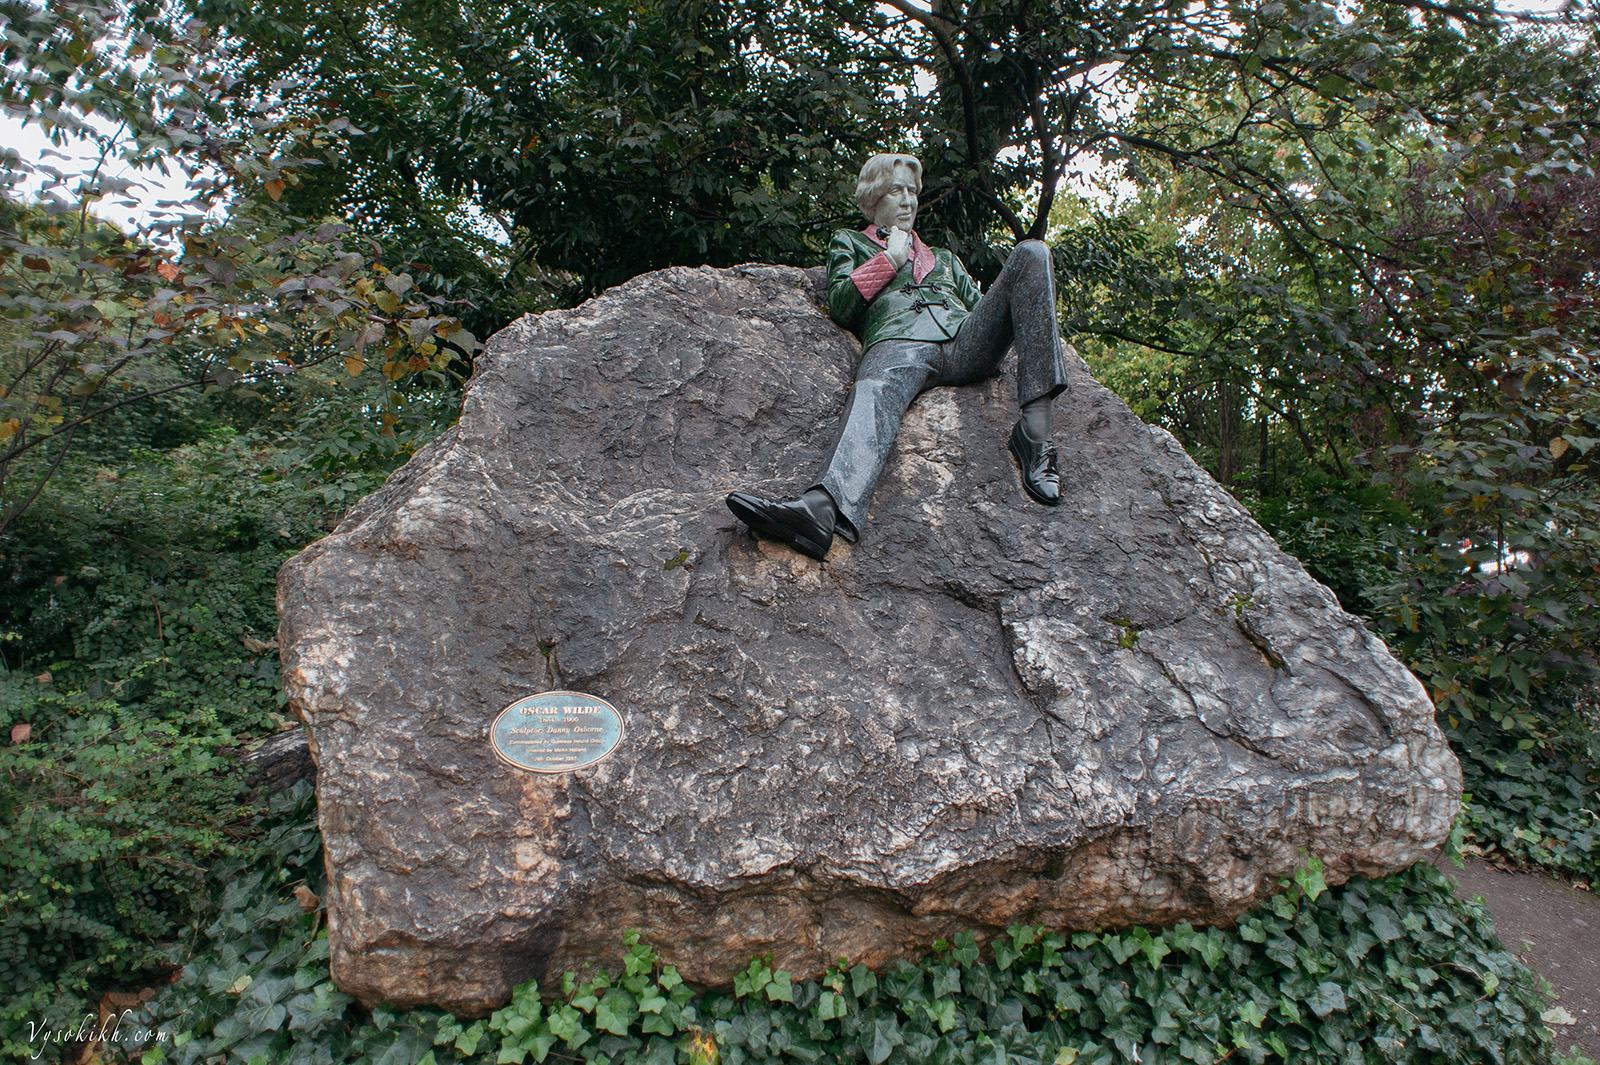 Oscar Wilde in Marrion square - мемориальная скульптура Оскара Уайльда в сквере Мэррион